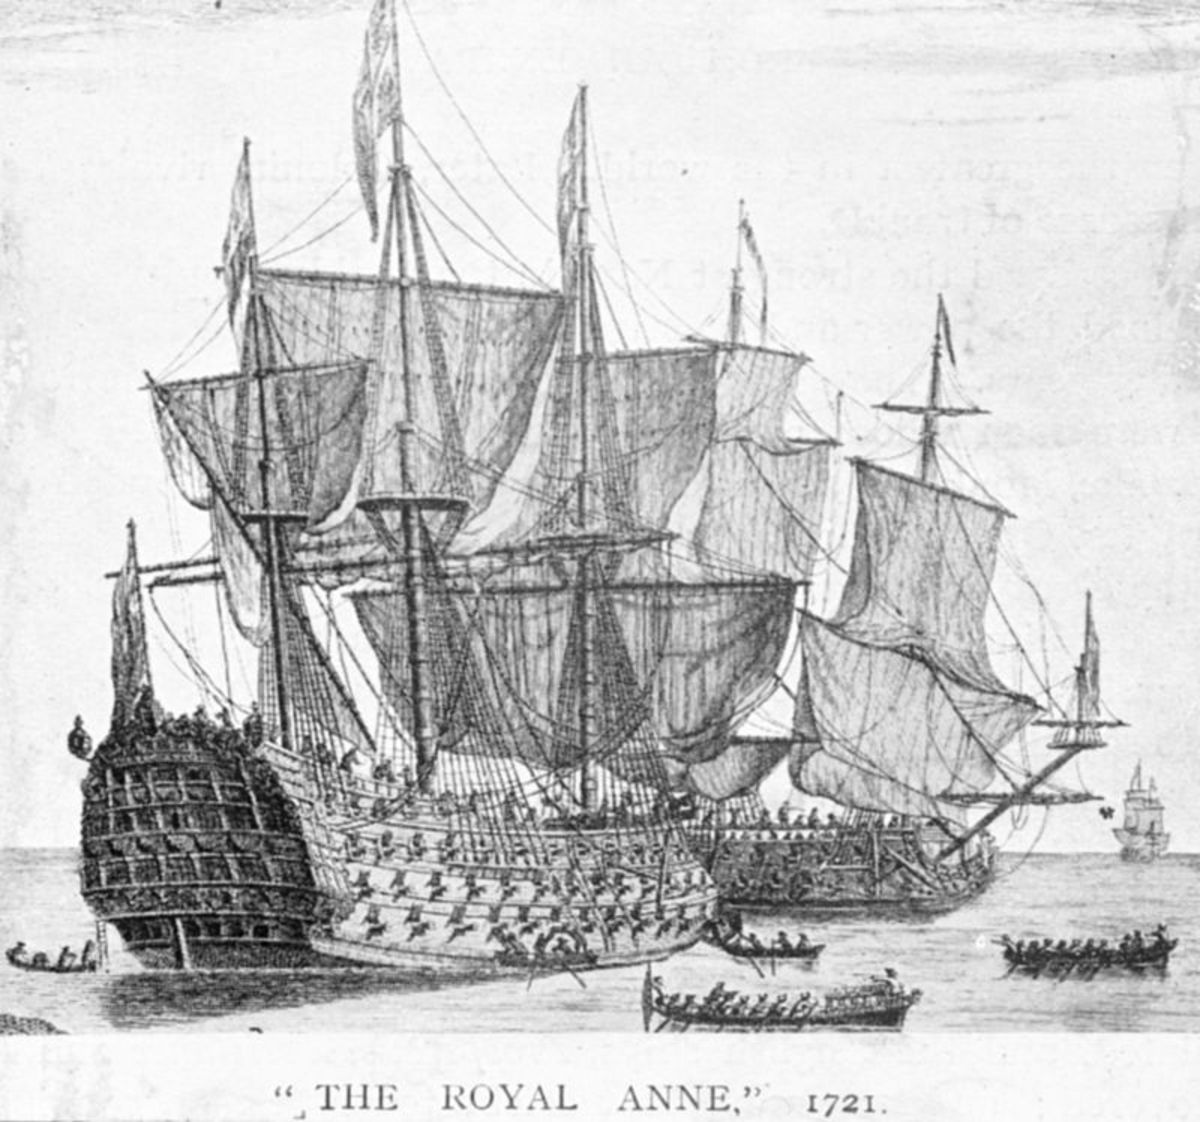 The Royal Anne was used to transport convicts to the colonies.